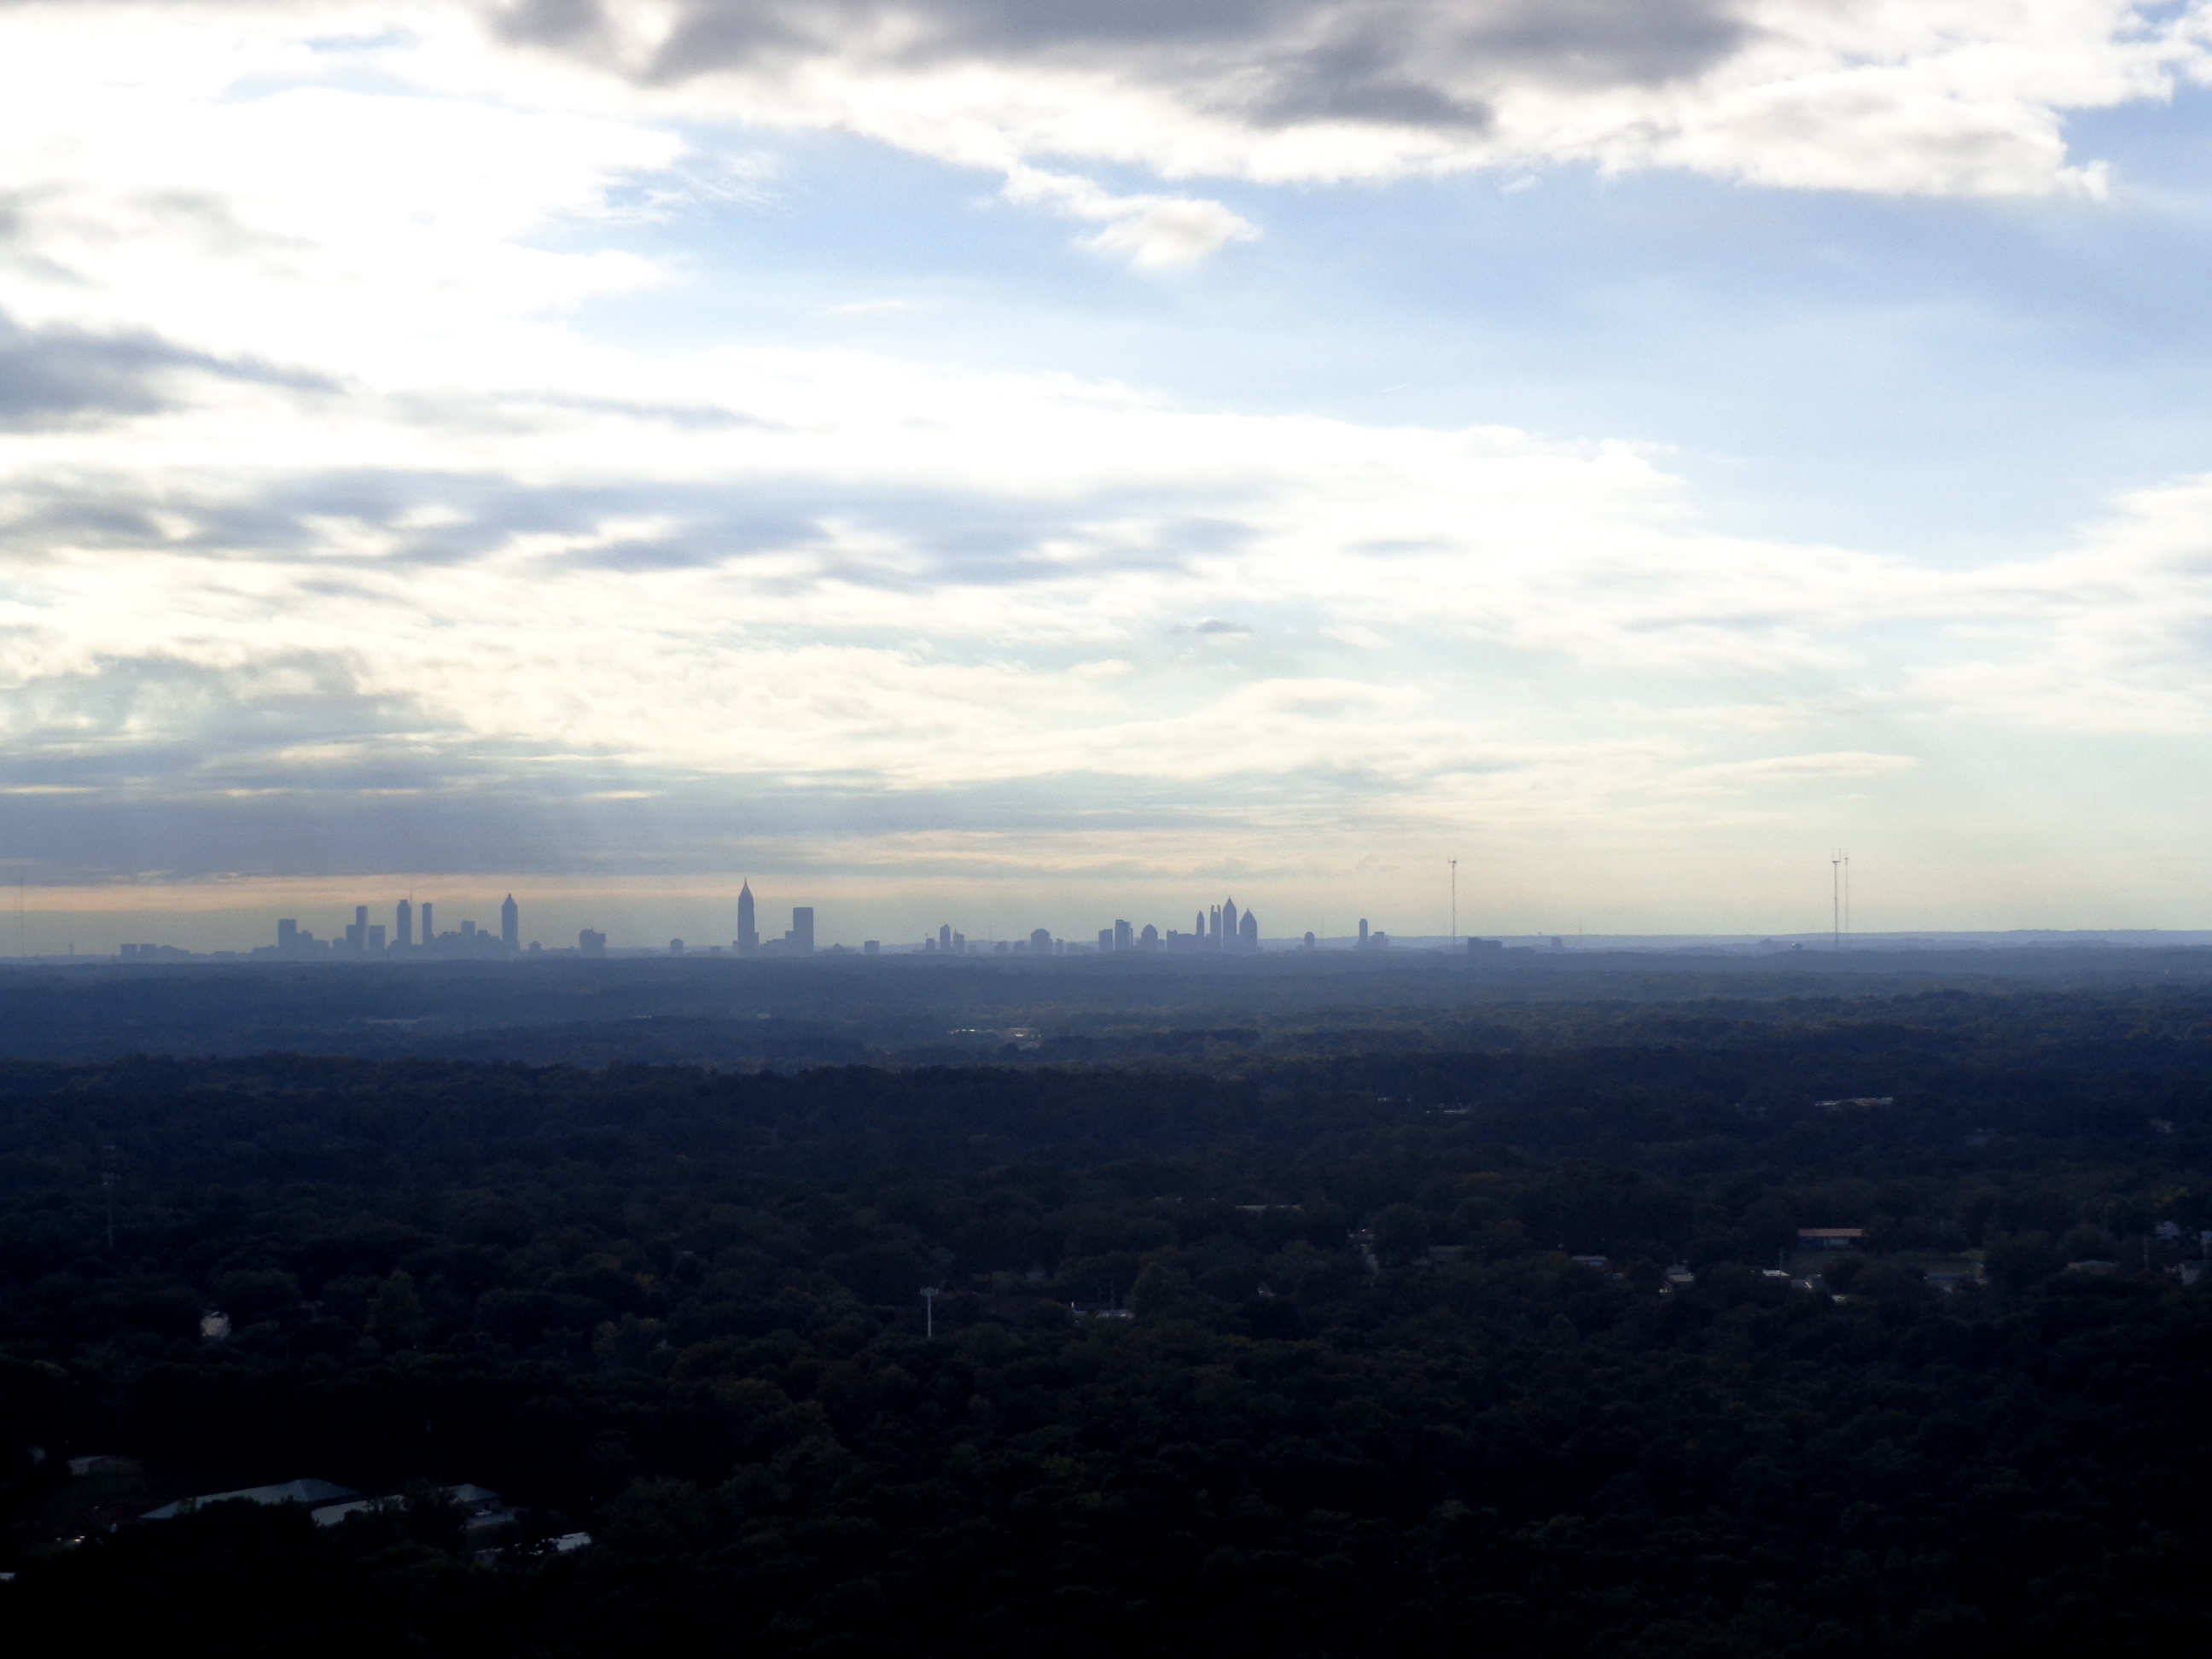 The view from Stone Mountain